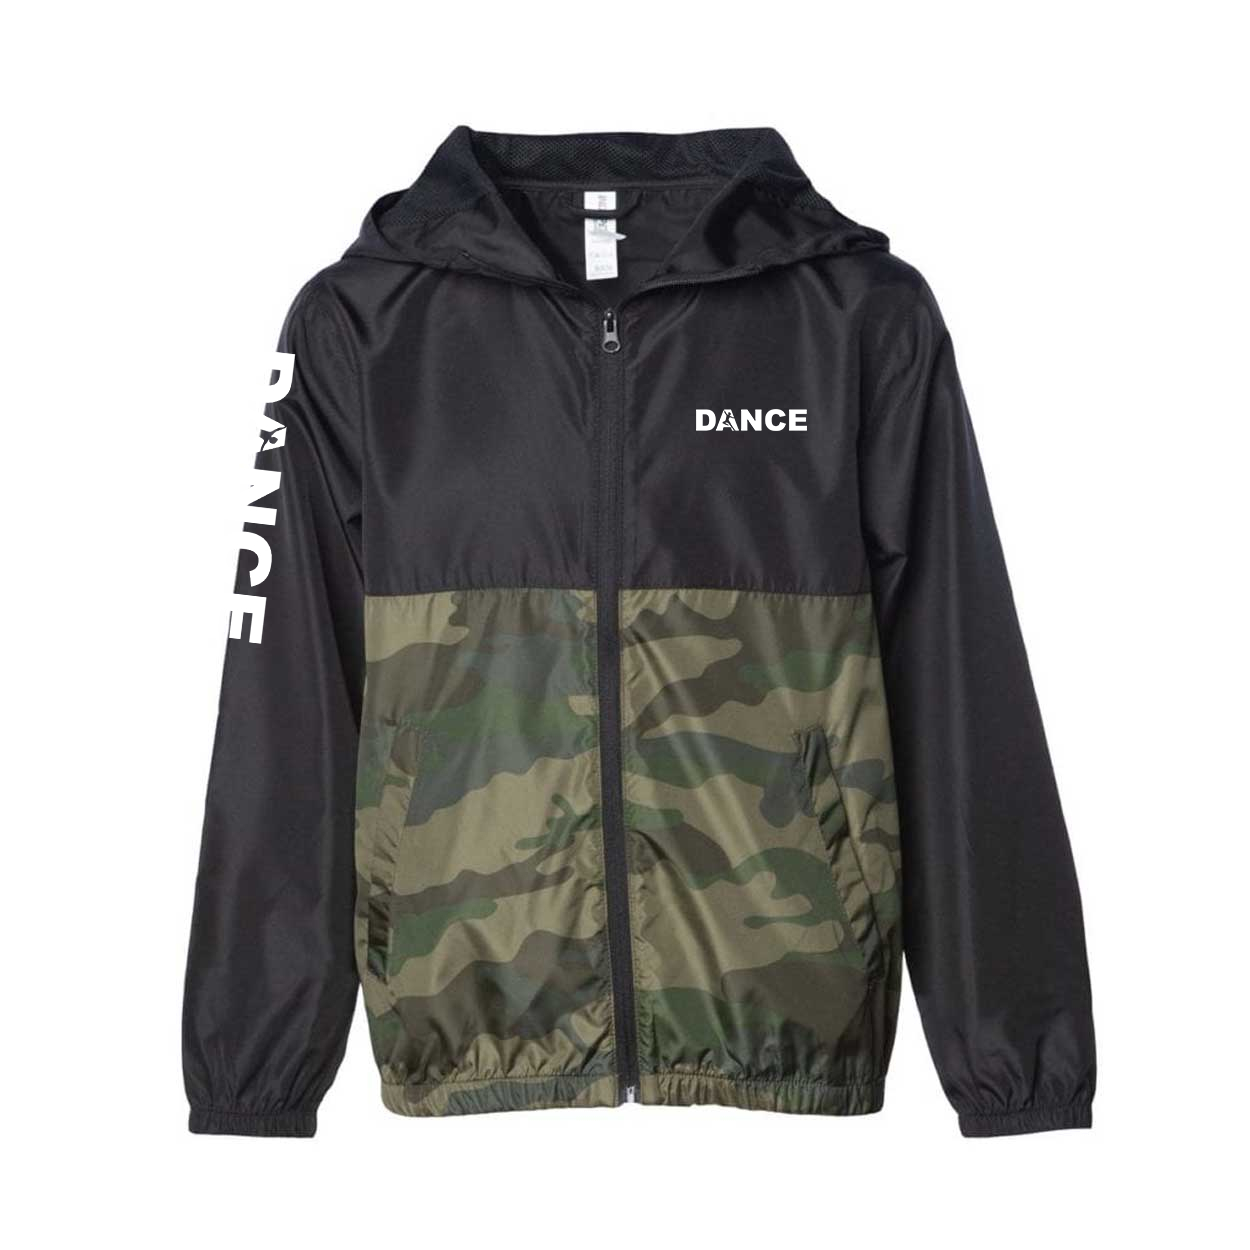 Dance Silhouette Logo Classic Youth Lightweight Windbreaker Black/Forest Camo (White Logo)